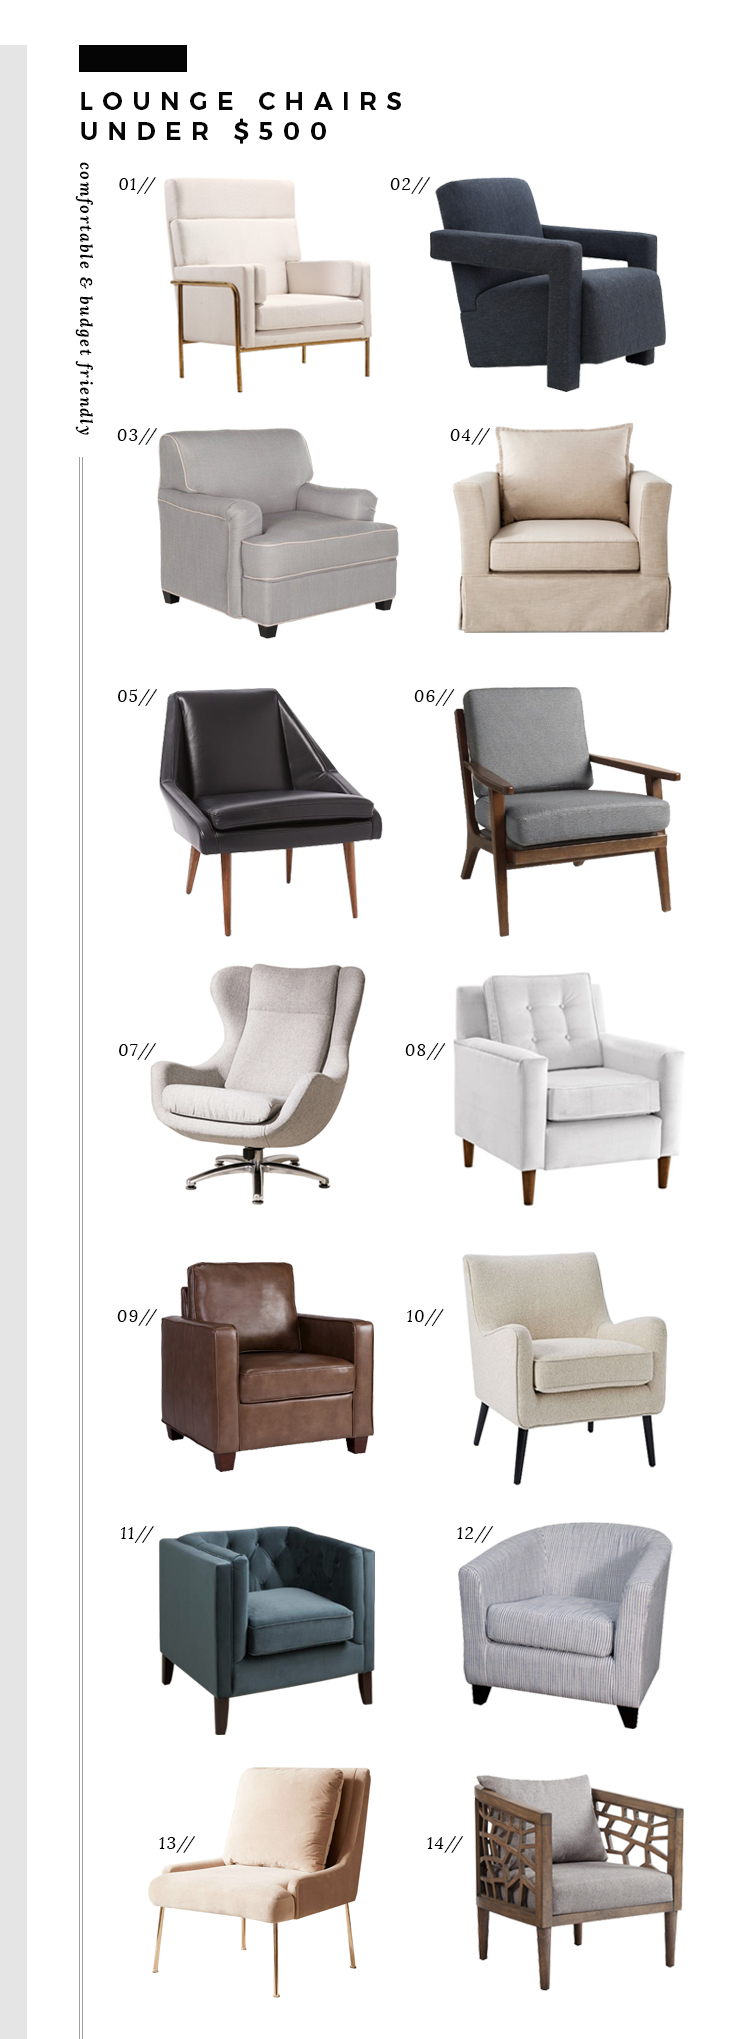 Lounge Chairs Under $500